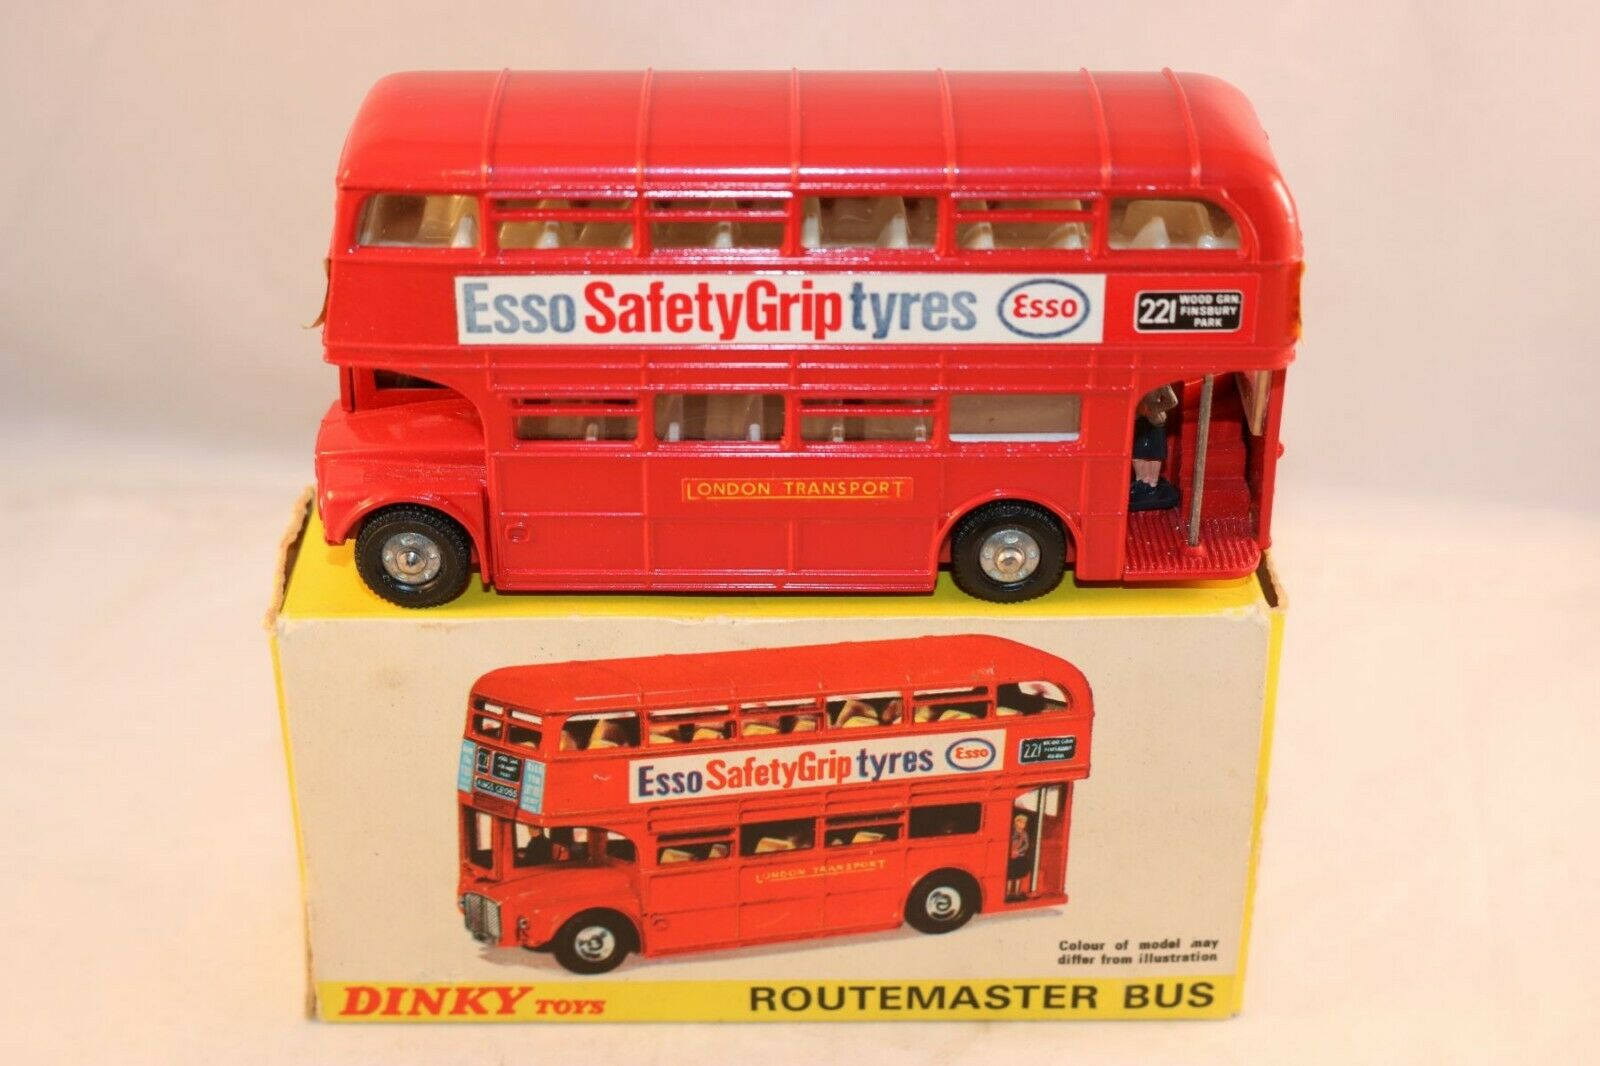 Dinky Toys 289 Routemaster Bus ESSO Safety Grip Tyres 99% mint in box